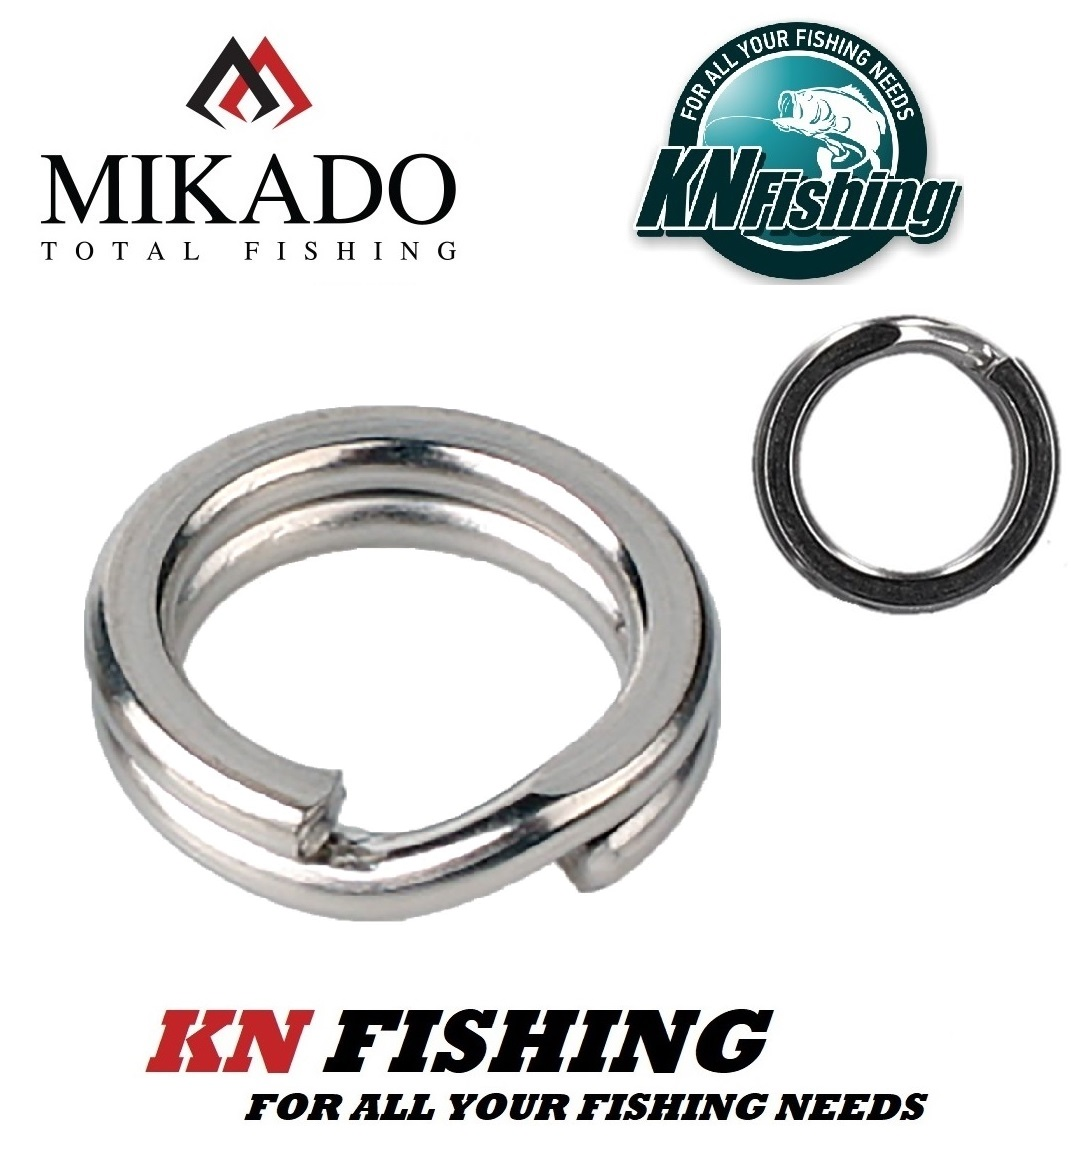 MIKADO SPLIT RING VERY HARD NICKEL 5 pcs